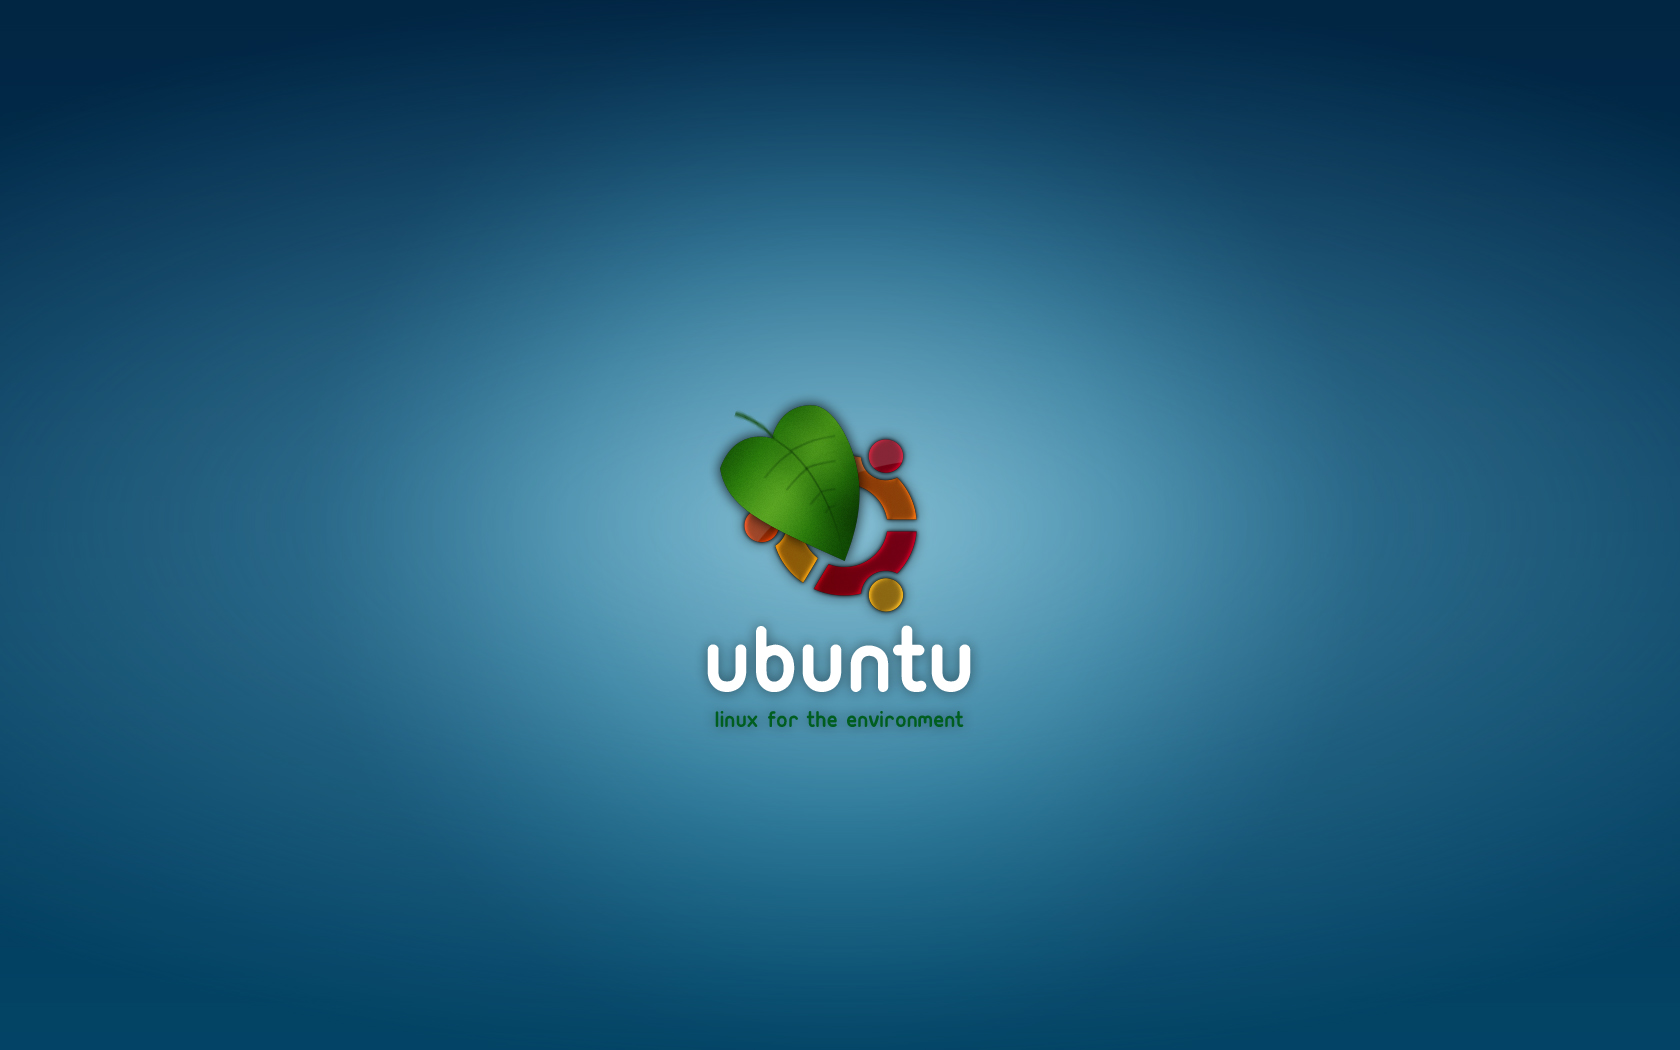 Ubuntu Wallpaper Set 13 Awesome Wallpapers 1680x1050